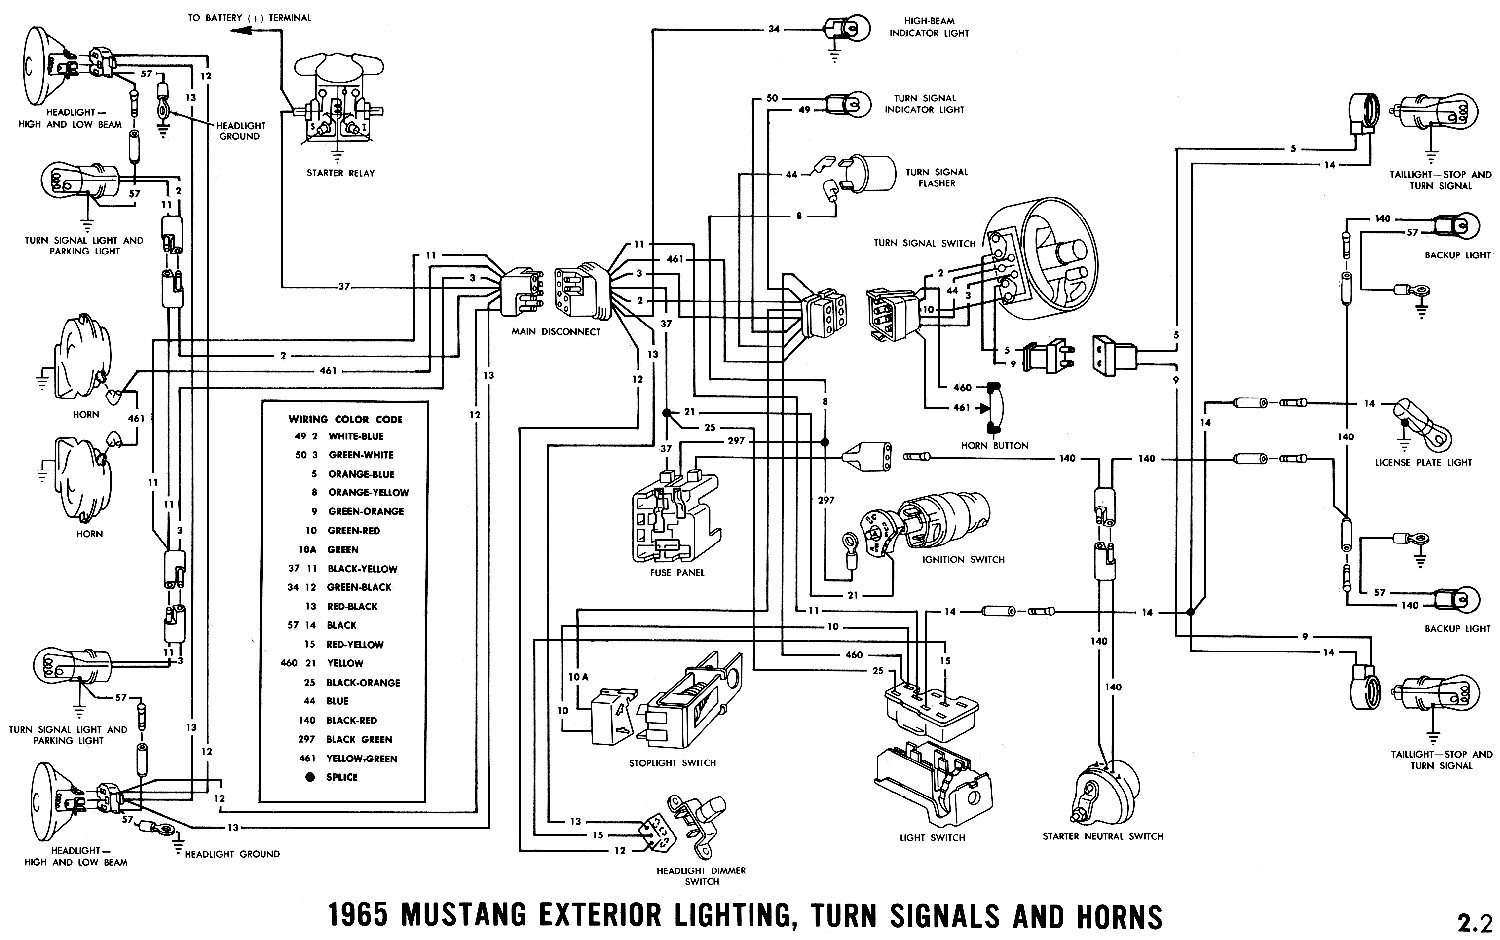 1968 Dodge Coronet Wiring Diagram Instrument Cluster Download Amc Javelin 1965 Mustang Diagrams Average Joe Restoration